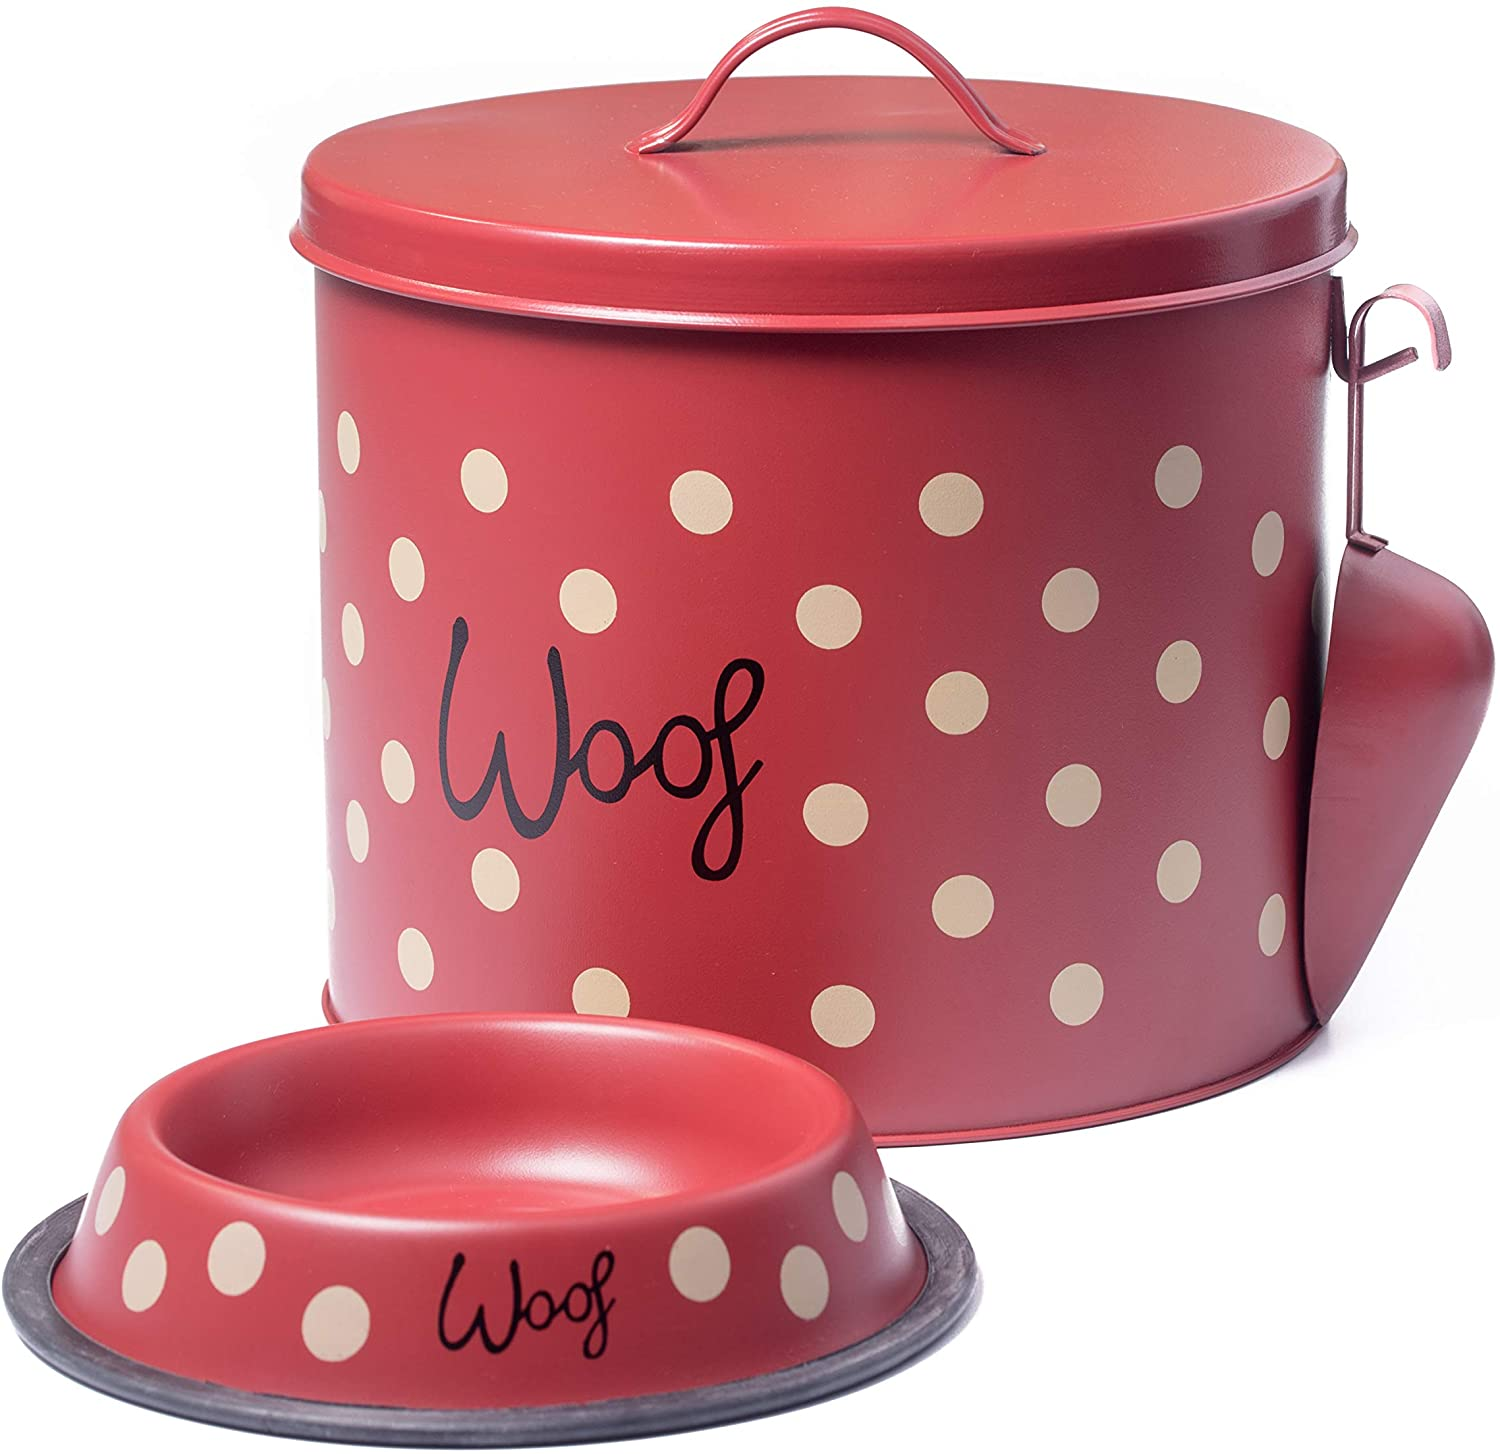 The PetSteel - Red Polka Dot Dog Decorative Canister with Bowl and Scoop   Pet Food and Treat Container Storage Set Red   Airtight Lids   Fit's Up to 10 lbs of Treats or Food